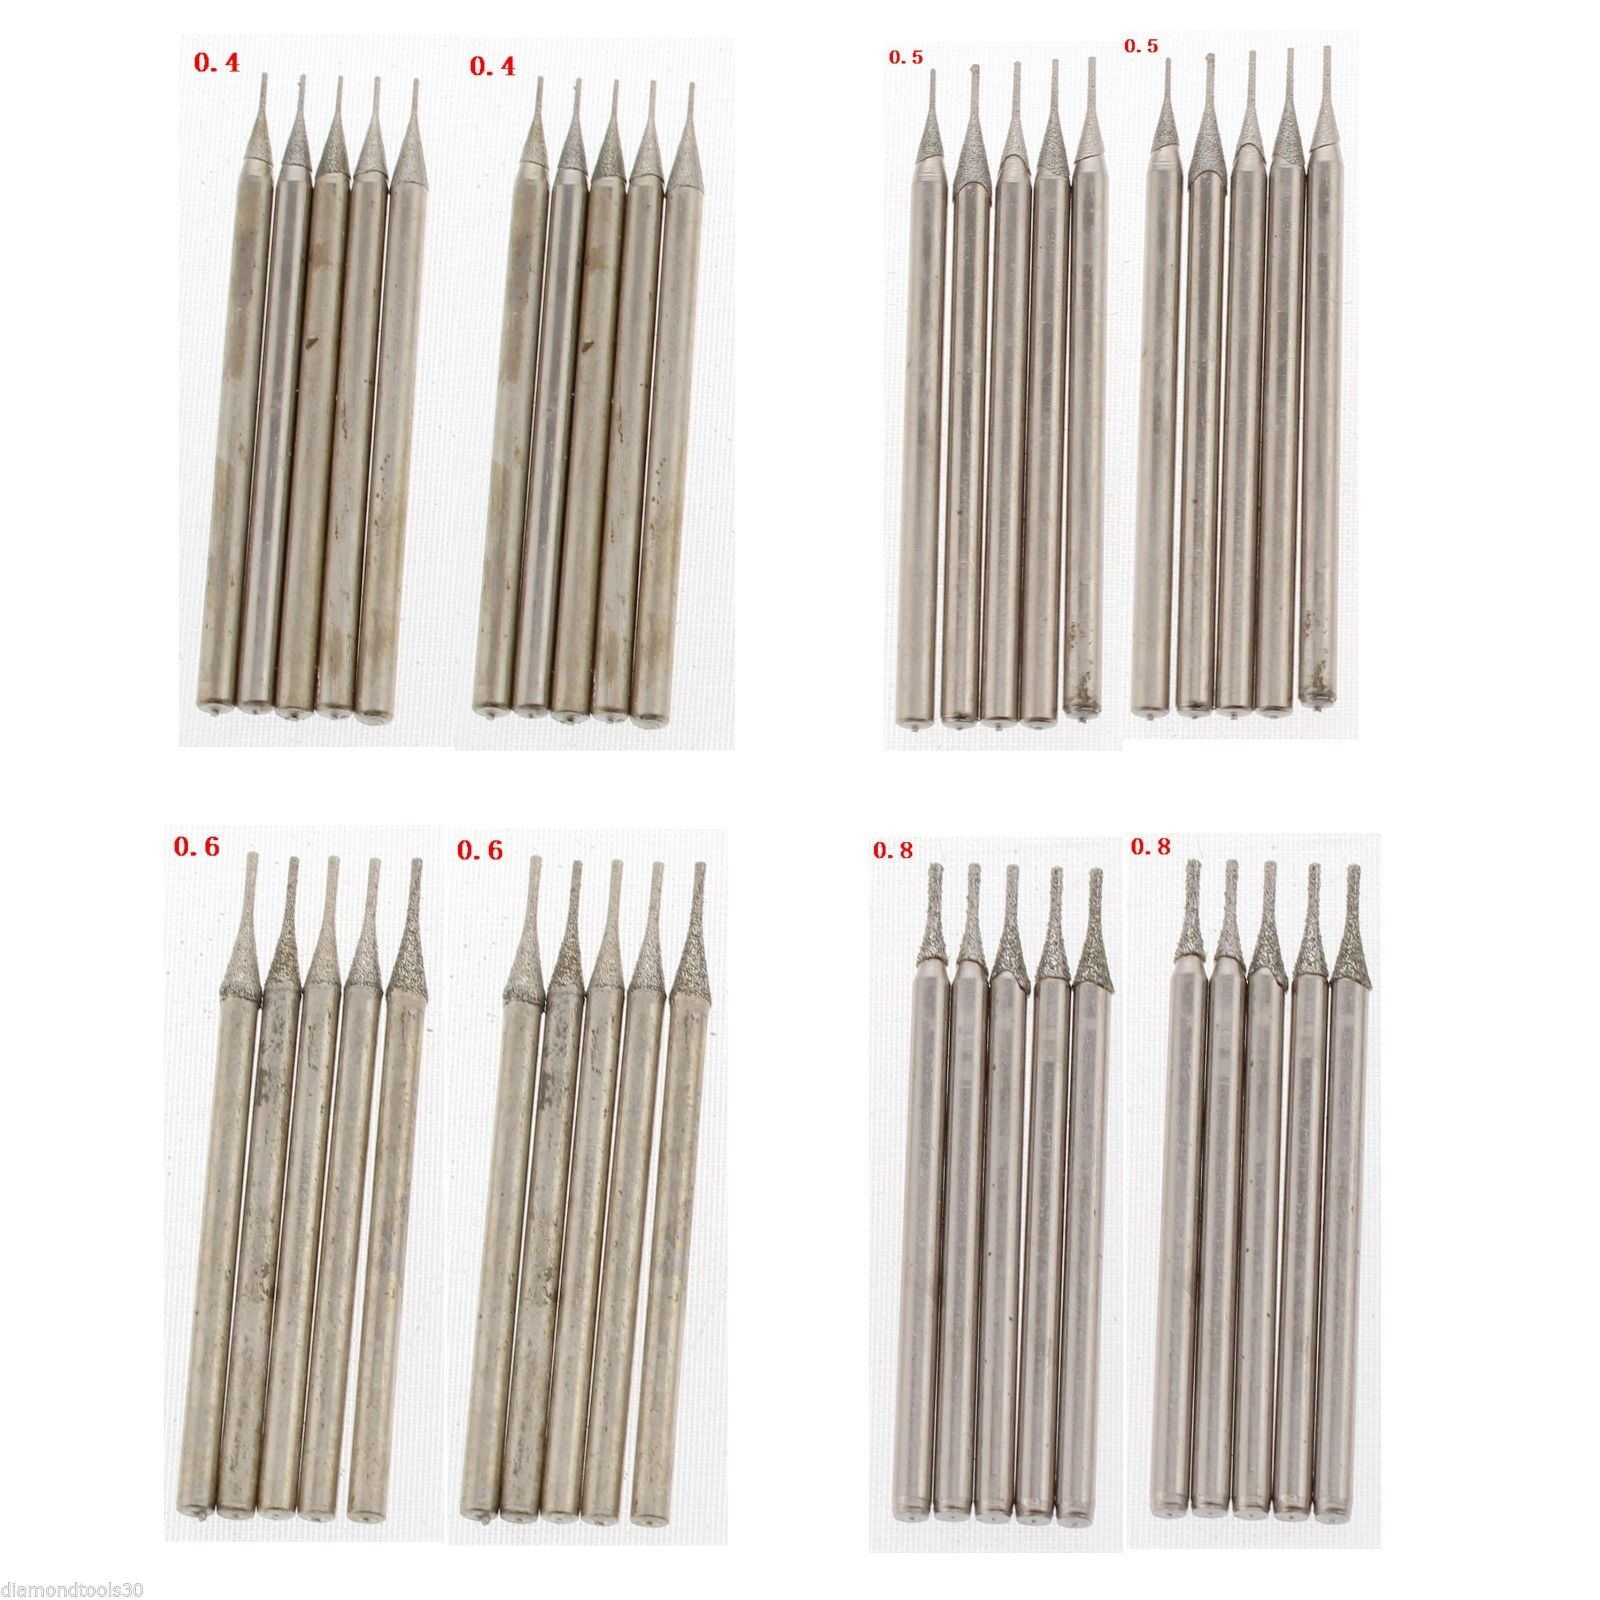 40Pcs 0.4 0.5 0.6 0.8mm Diamond Hole Saw Drill Bit Set Coated Solid Bits Masonry Drilling Jewelry Tools For Stone Gemstone silver jewelry gems drill bits diamond coated hole saw tools 0 7mm set of 100